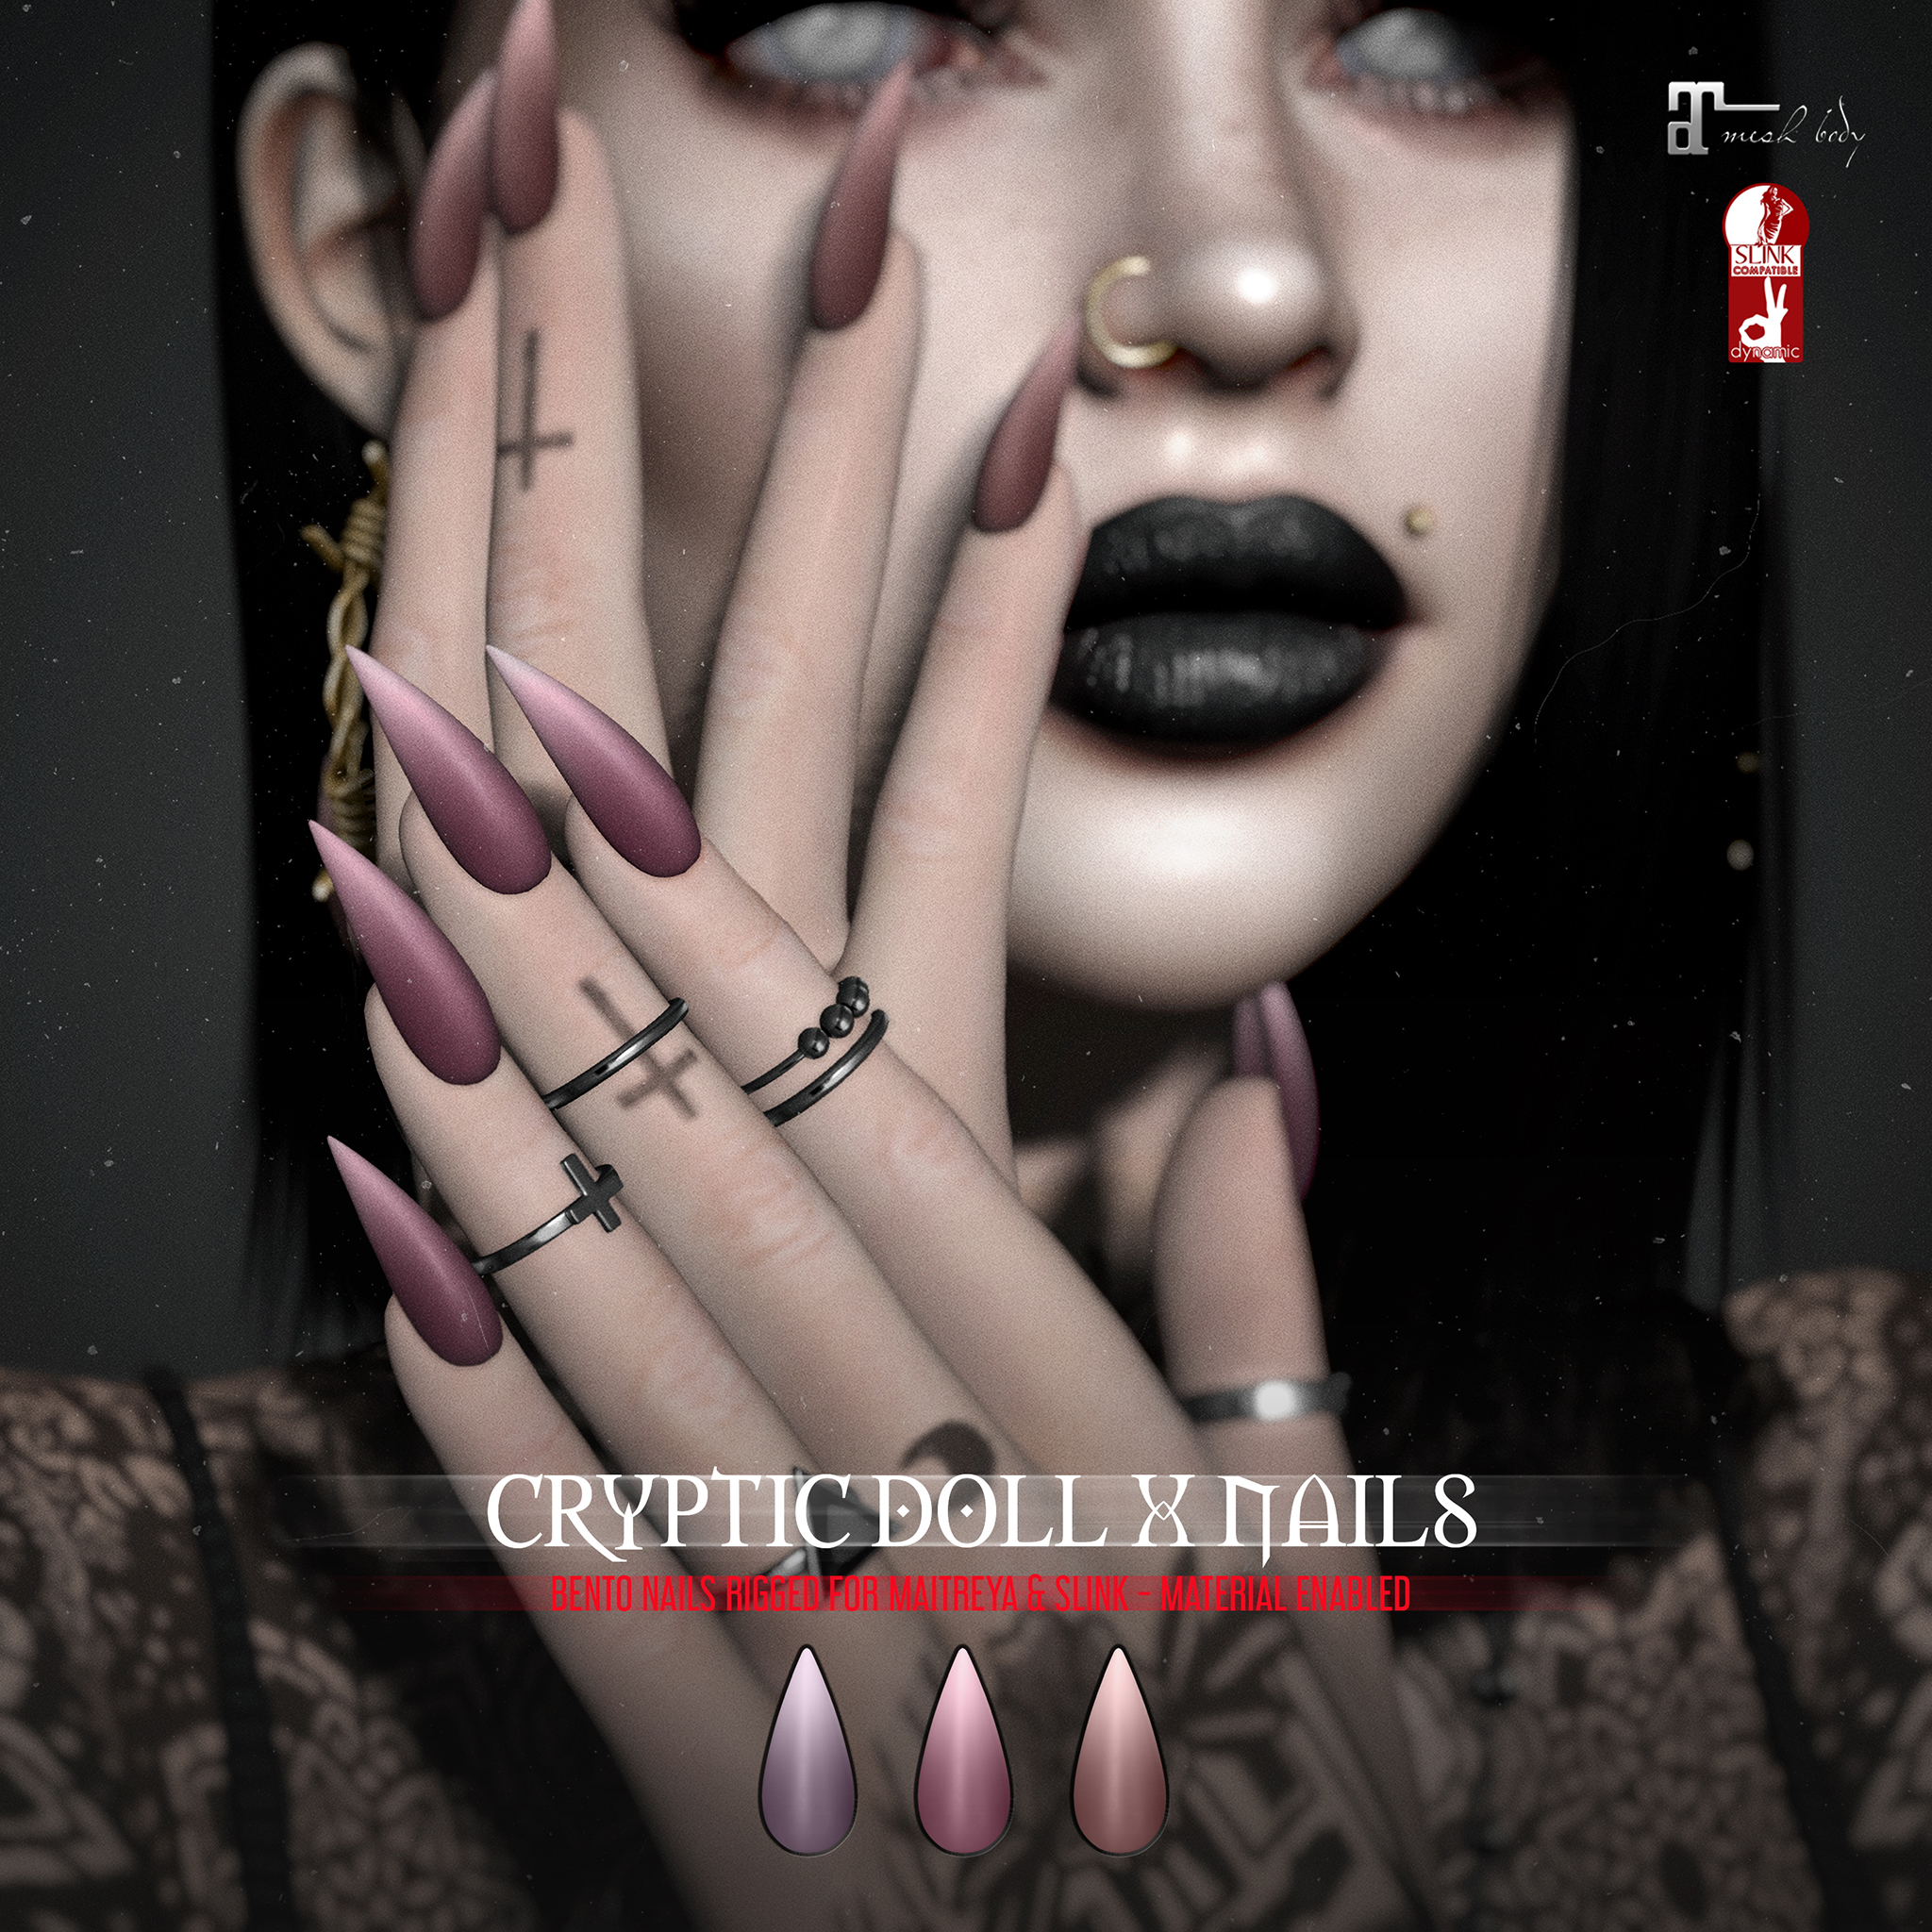 [ Conviction ] Cryptic Doll Nails - Epiphany Exclusive AD.jpg